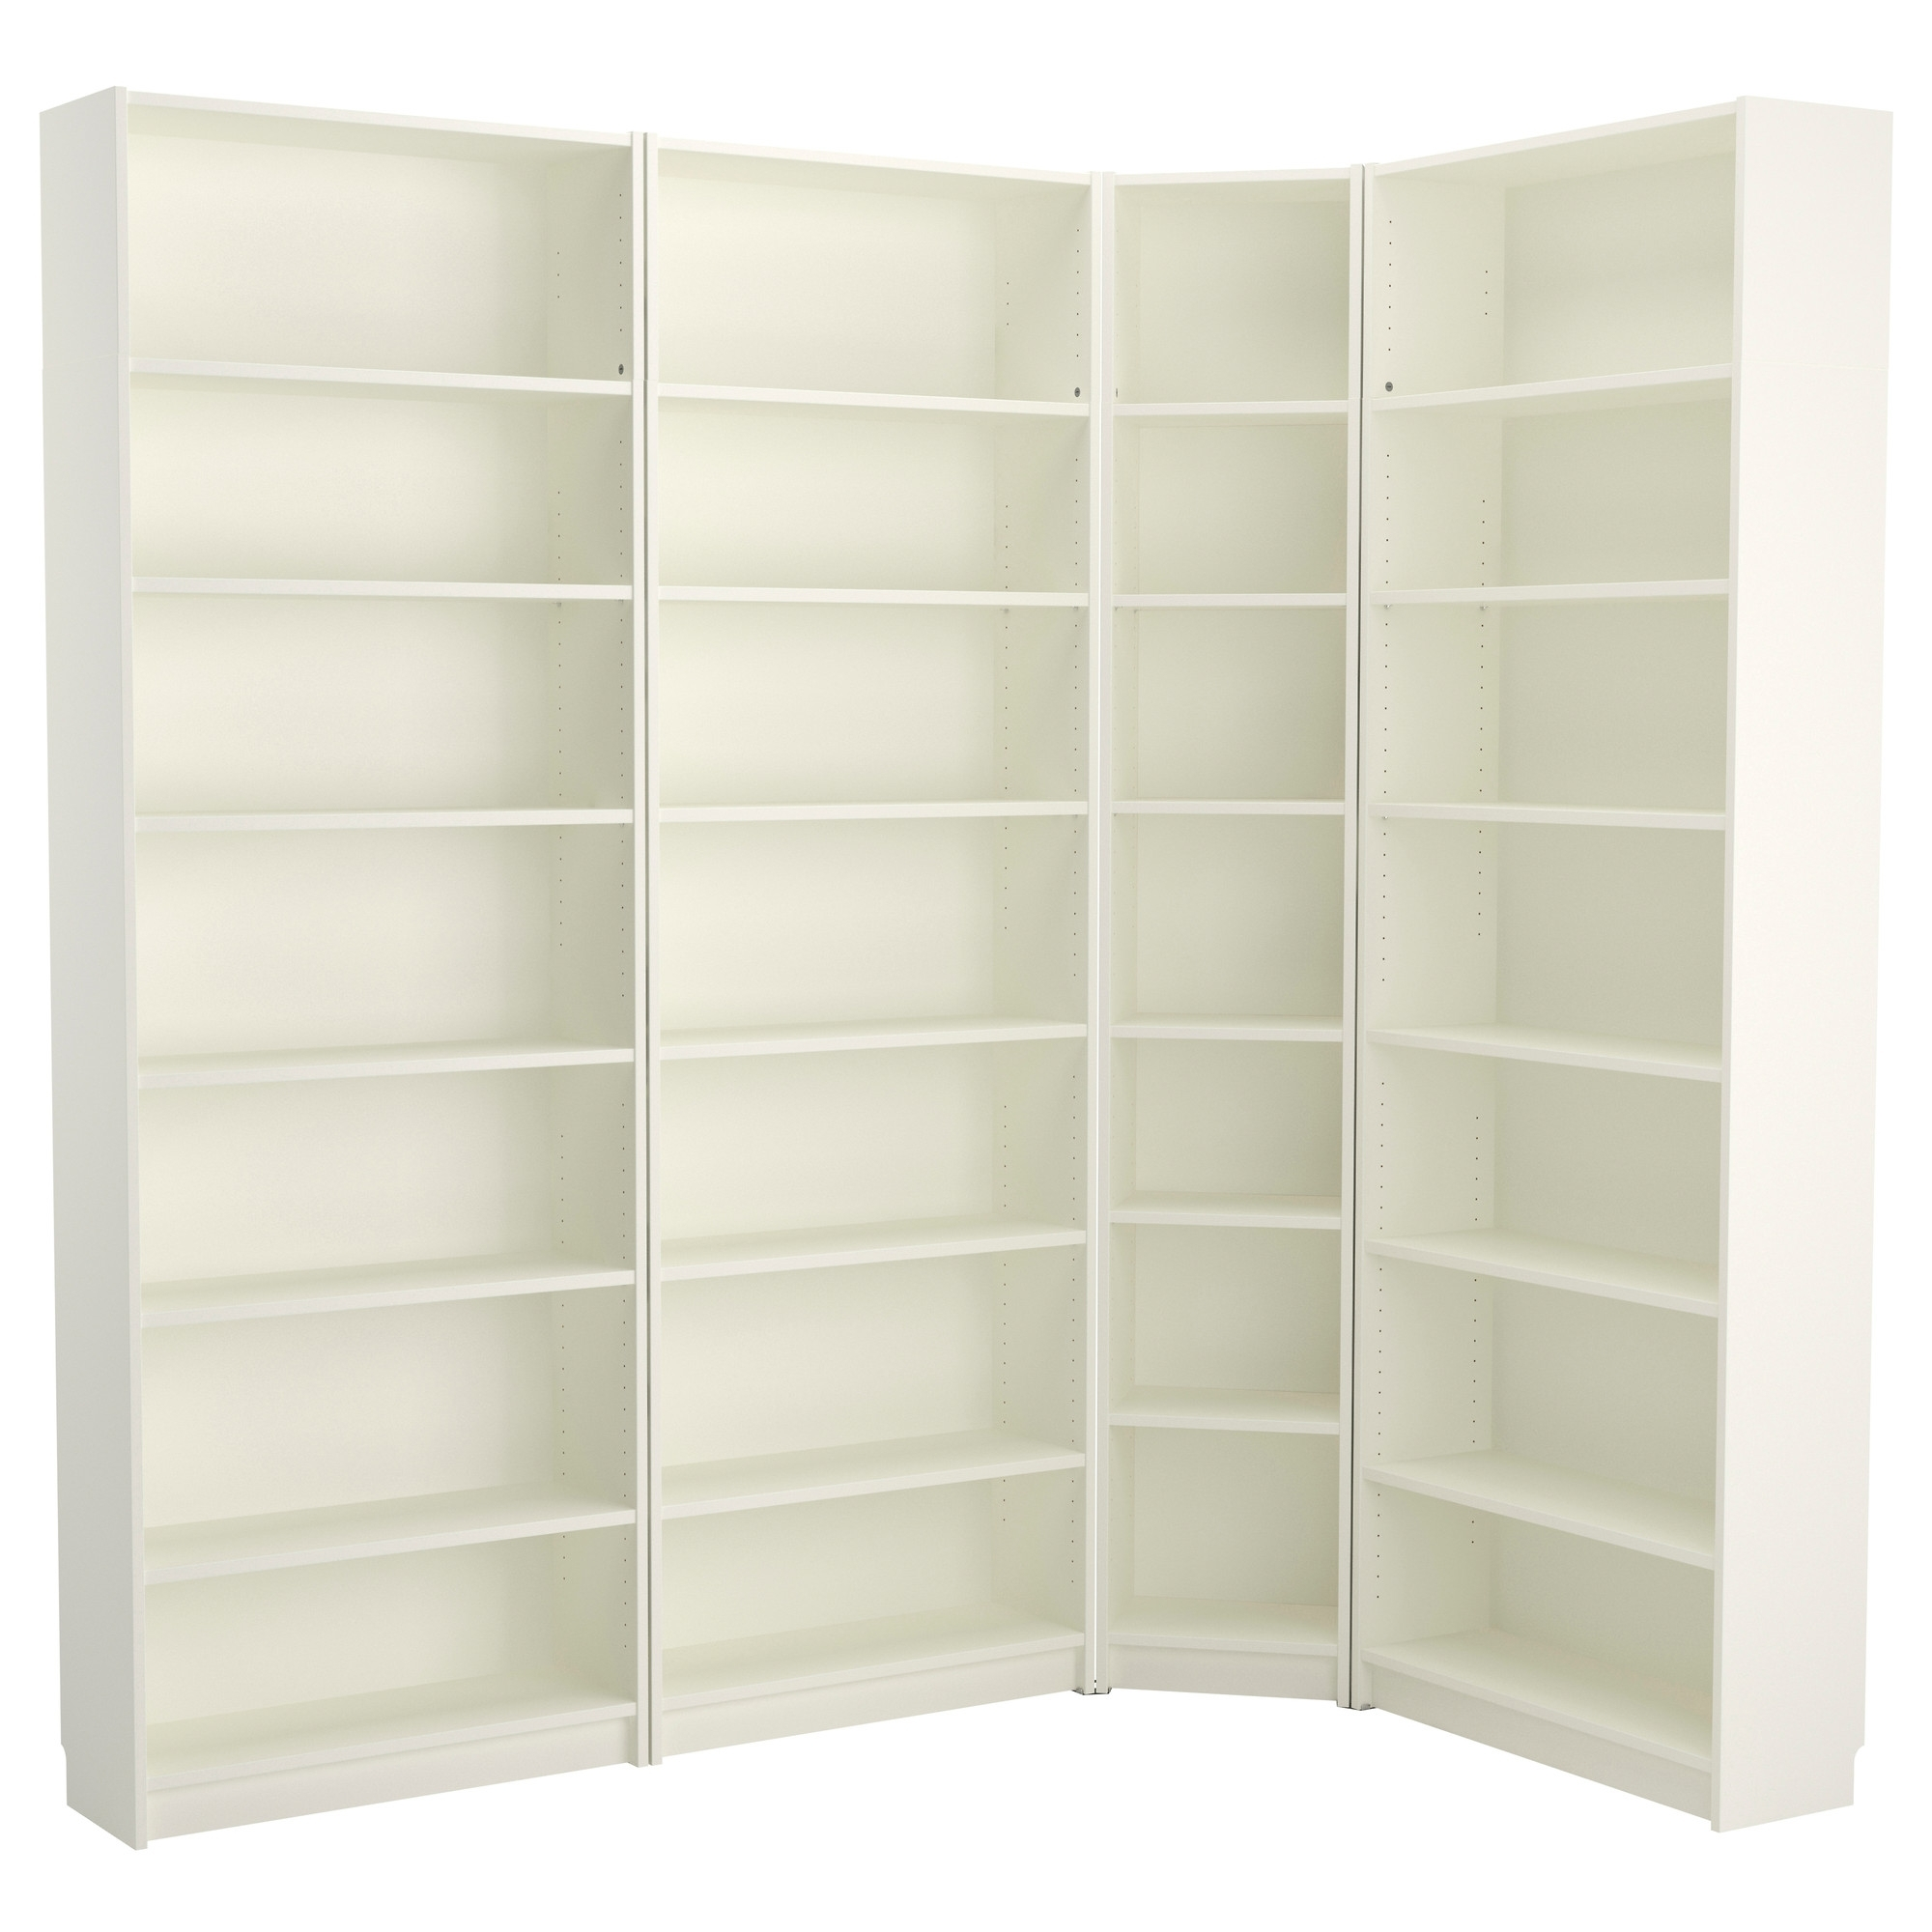 Ikea White Bookcases In Well Known Billy Bookcase – White – Ikea (View 10 of 15)